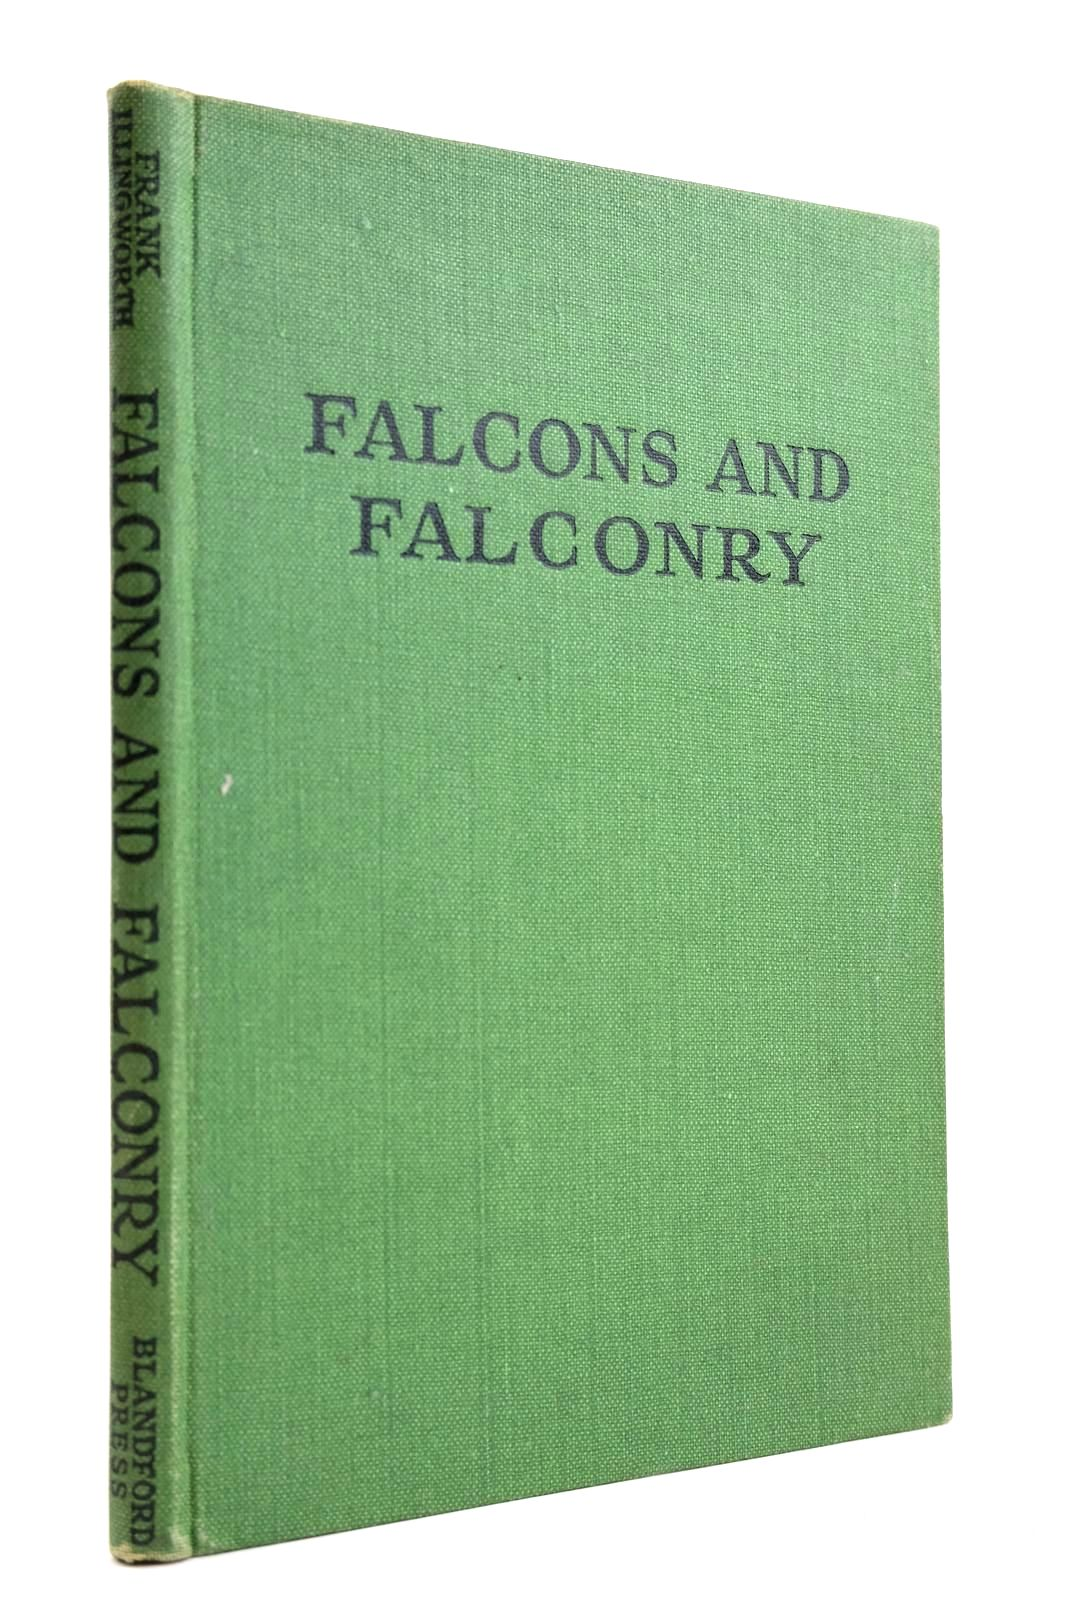 Photo of FALCONS AND FALCONRY written by Illingworth, Frank published by Blandford Press (STOCK CODE: 2132666)  for sale by Stella & Rose's Books